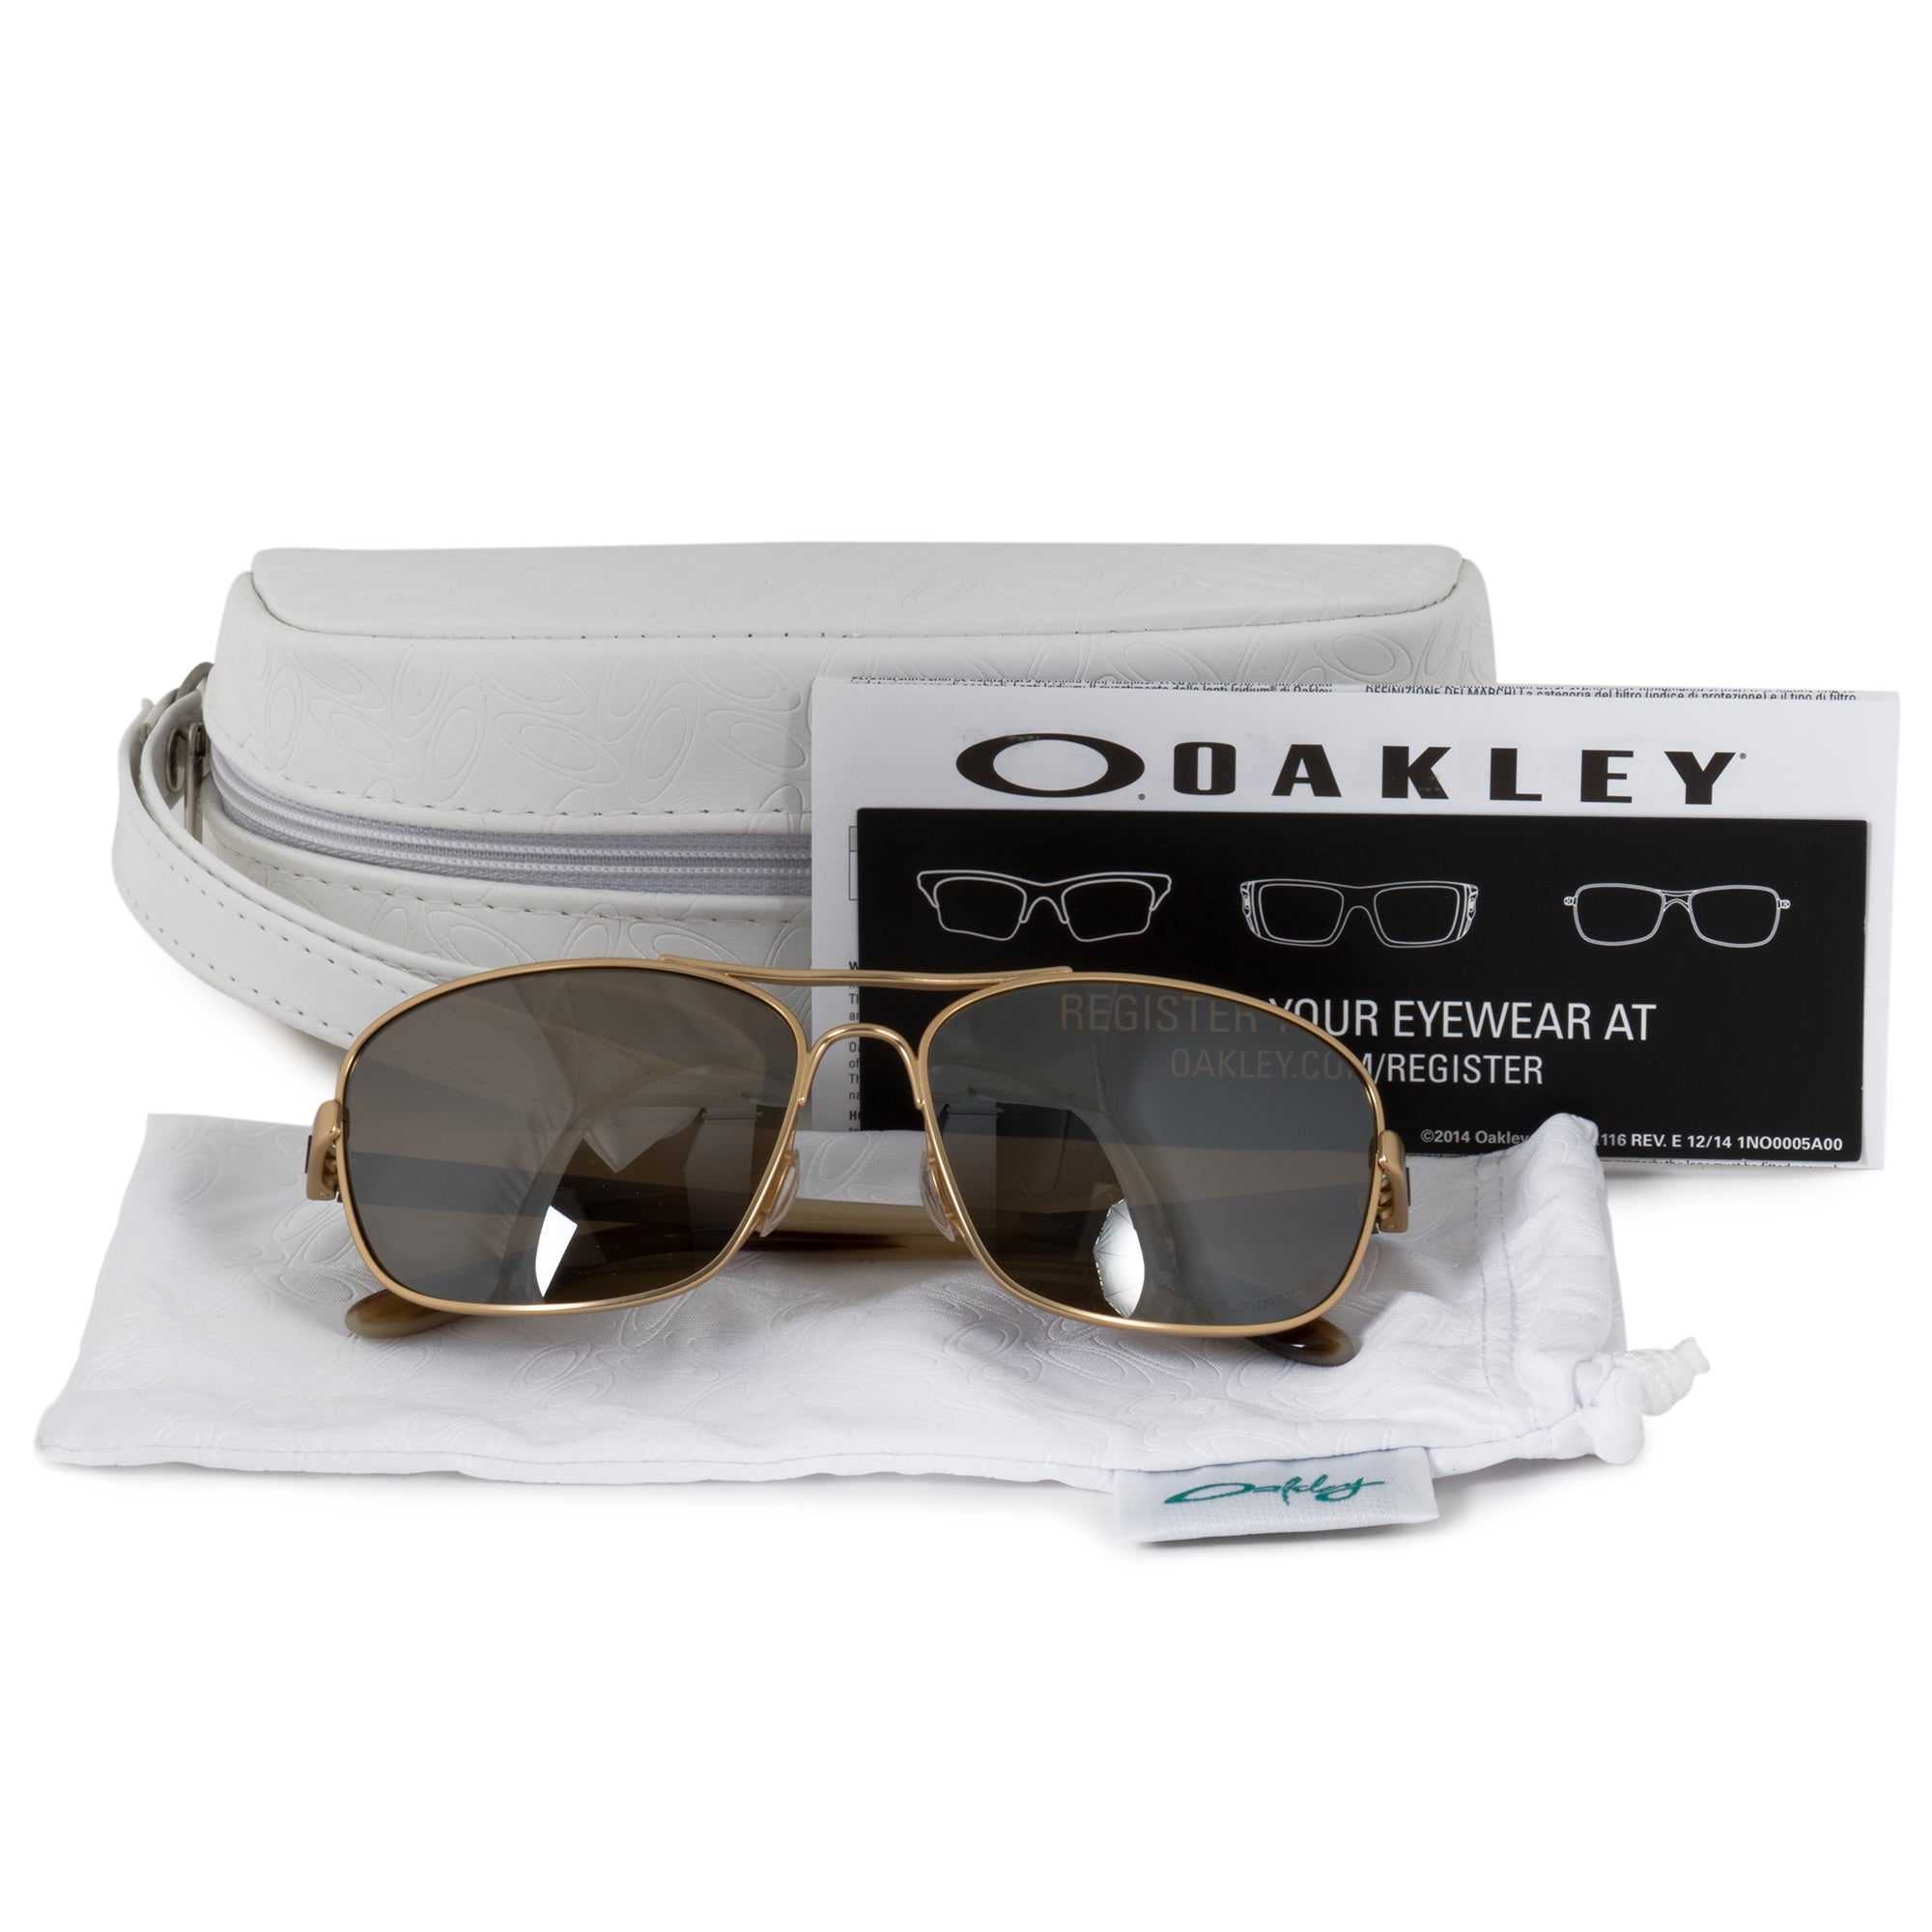 Oakley Sanctuary Square Sunglasses 0OO4116 411605 58 | Gold Frame | Polarized Brown Lenses